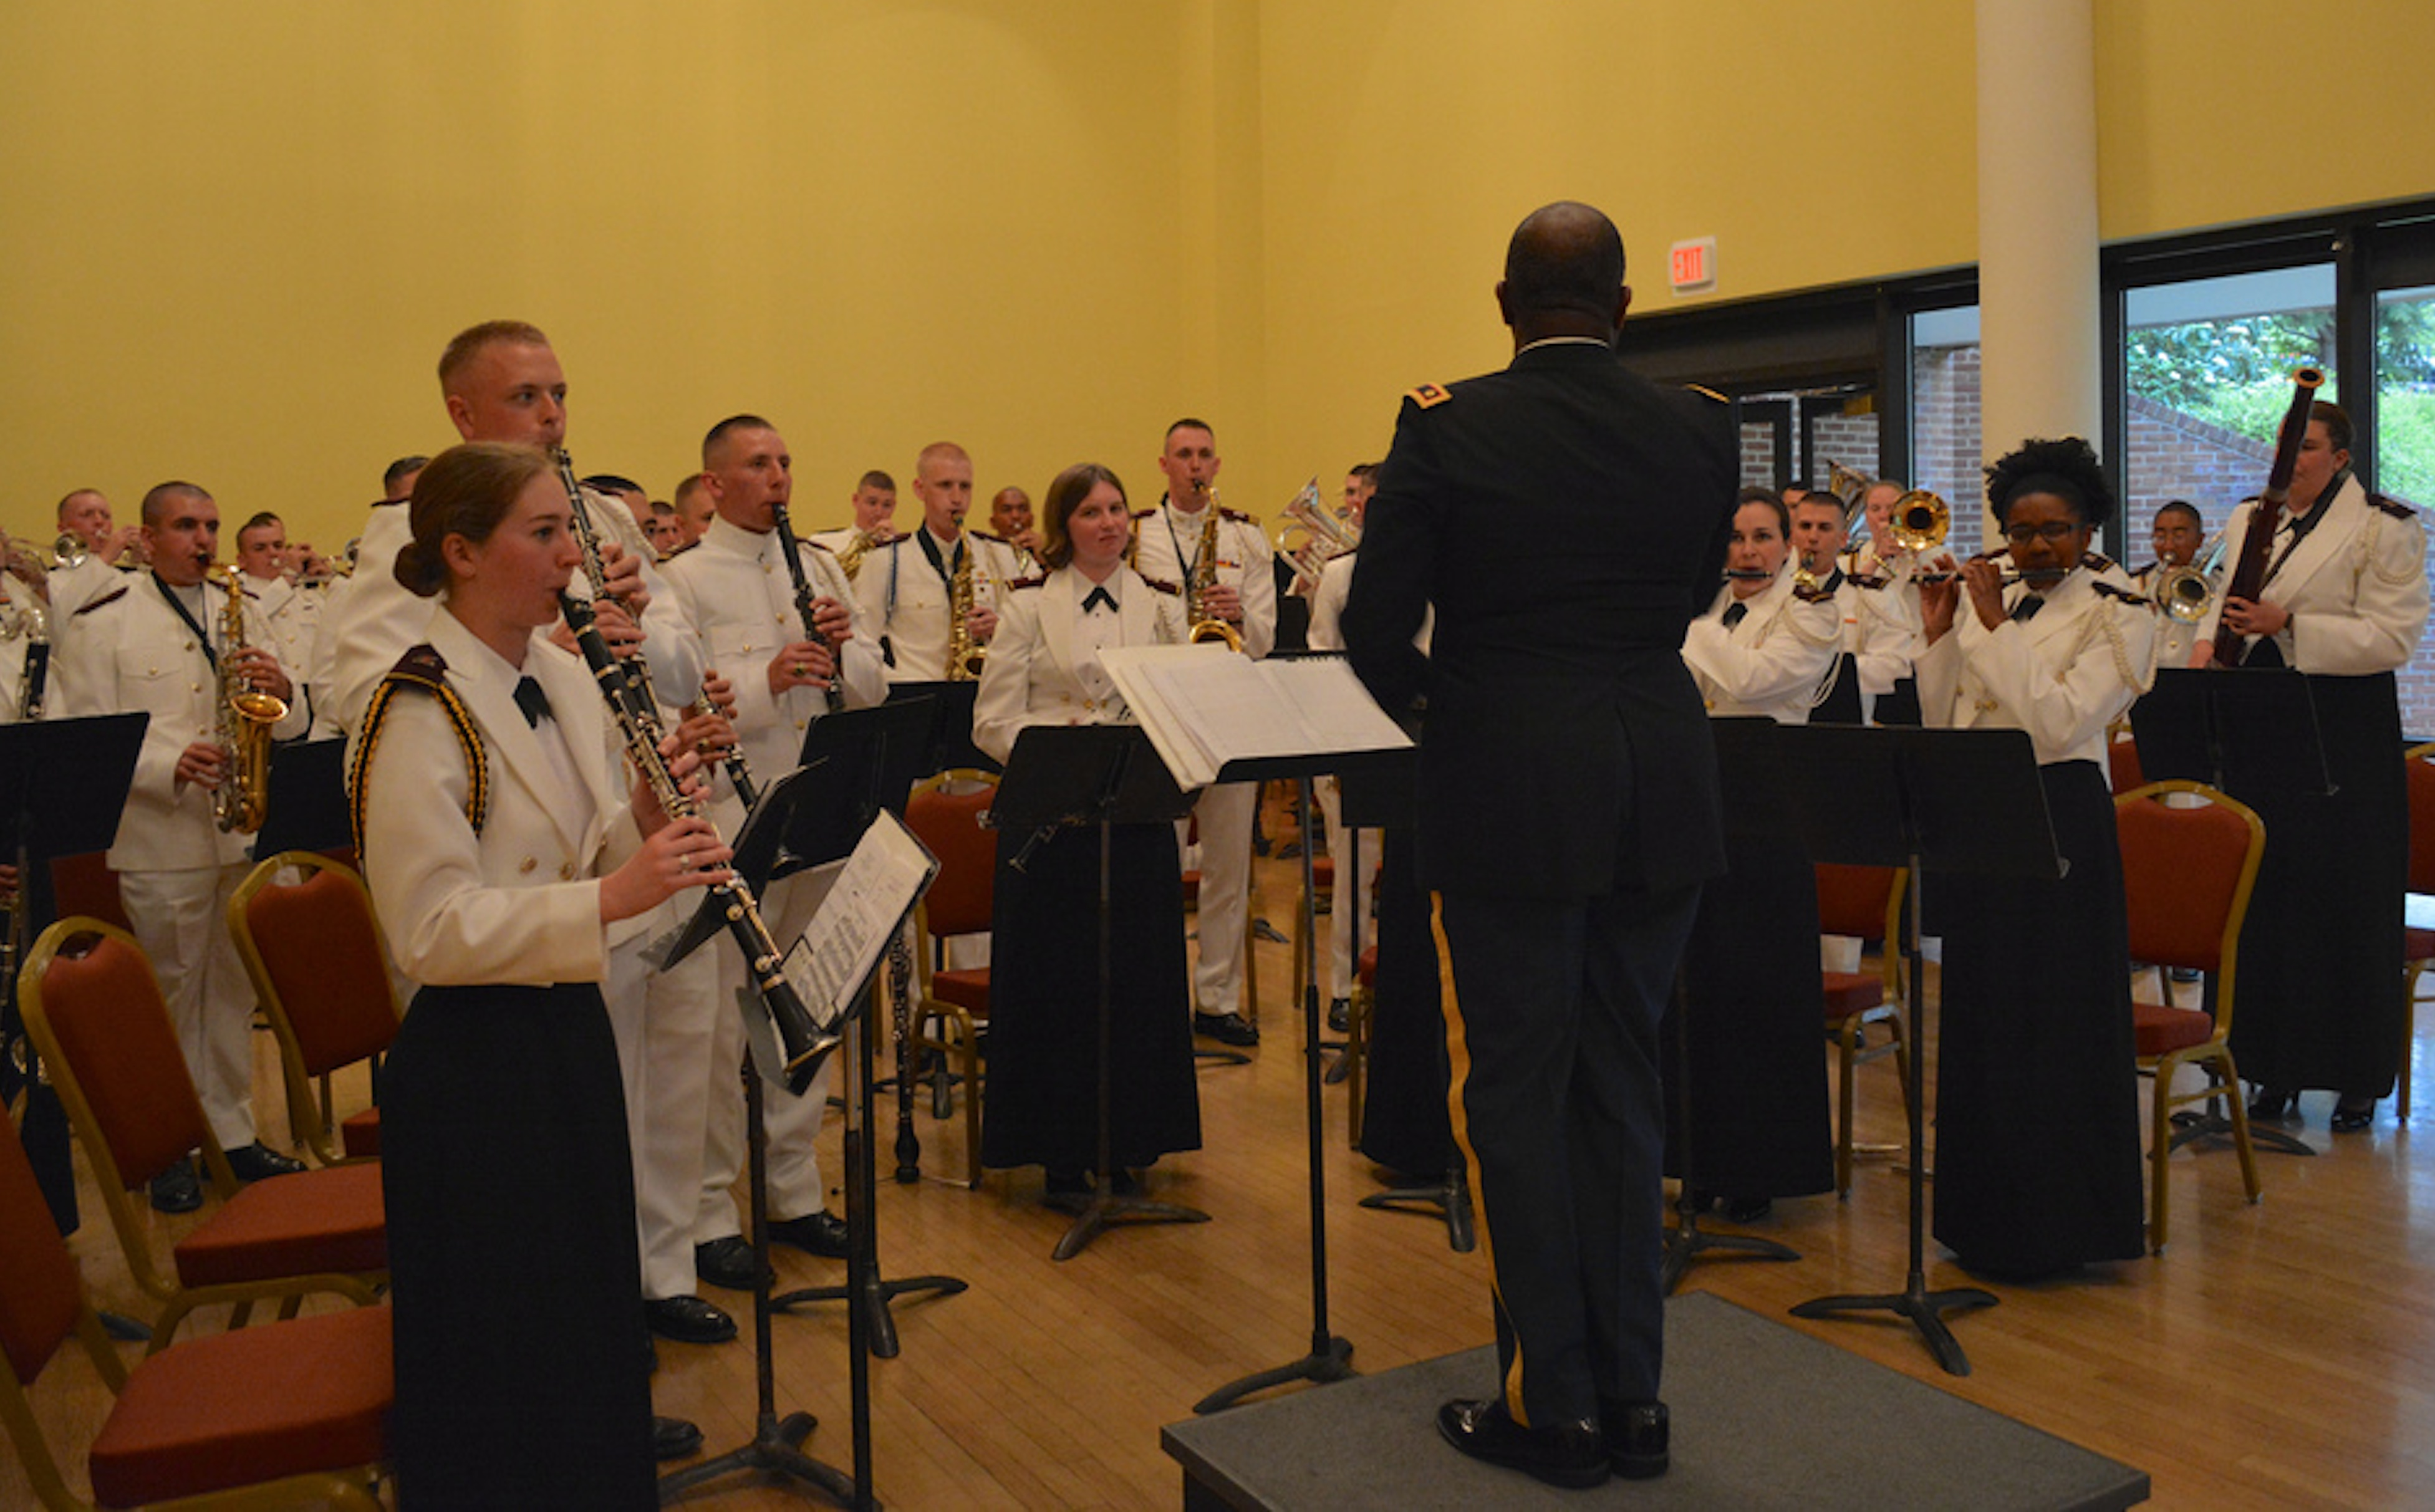 The Virginia Tech Corps of Cadets regimental band, the Highty-Tighties, play at their annual concert band performance last spring in the Old Dominion Ballroom in Squires Student Center.